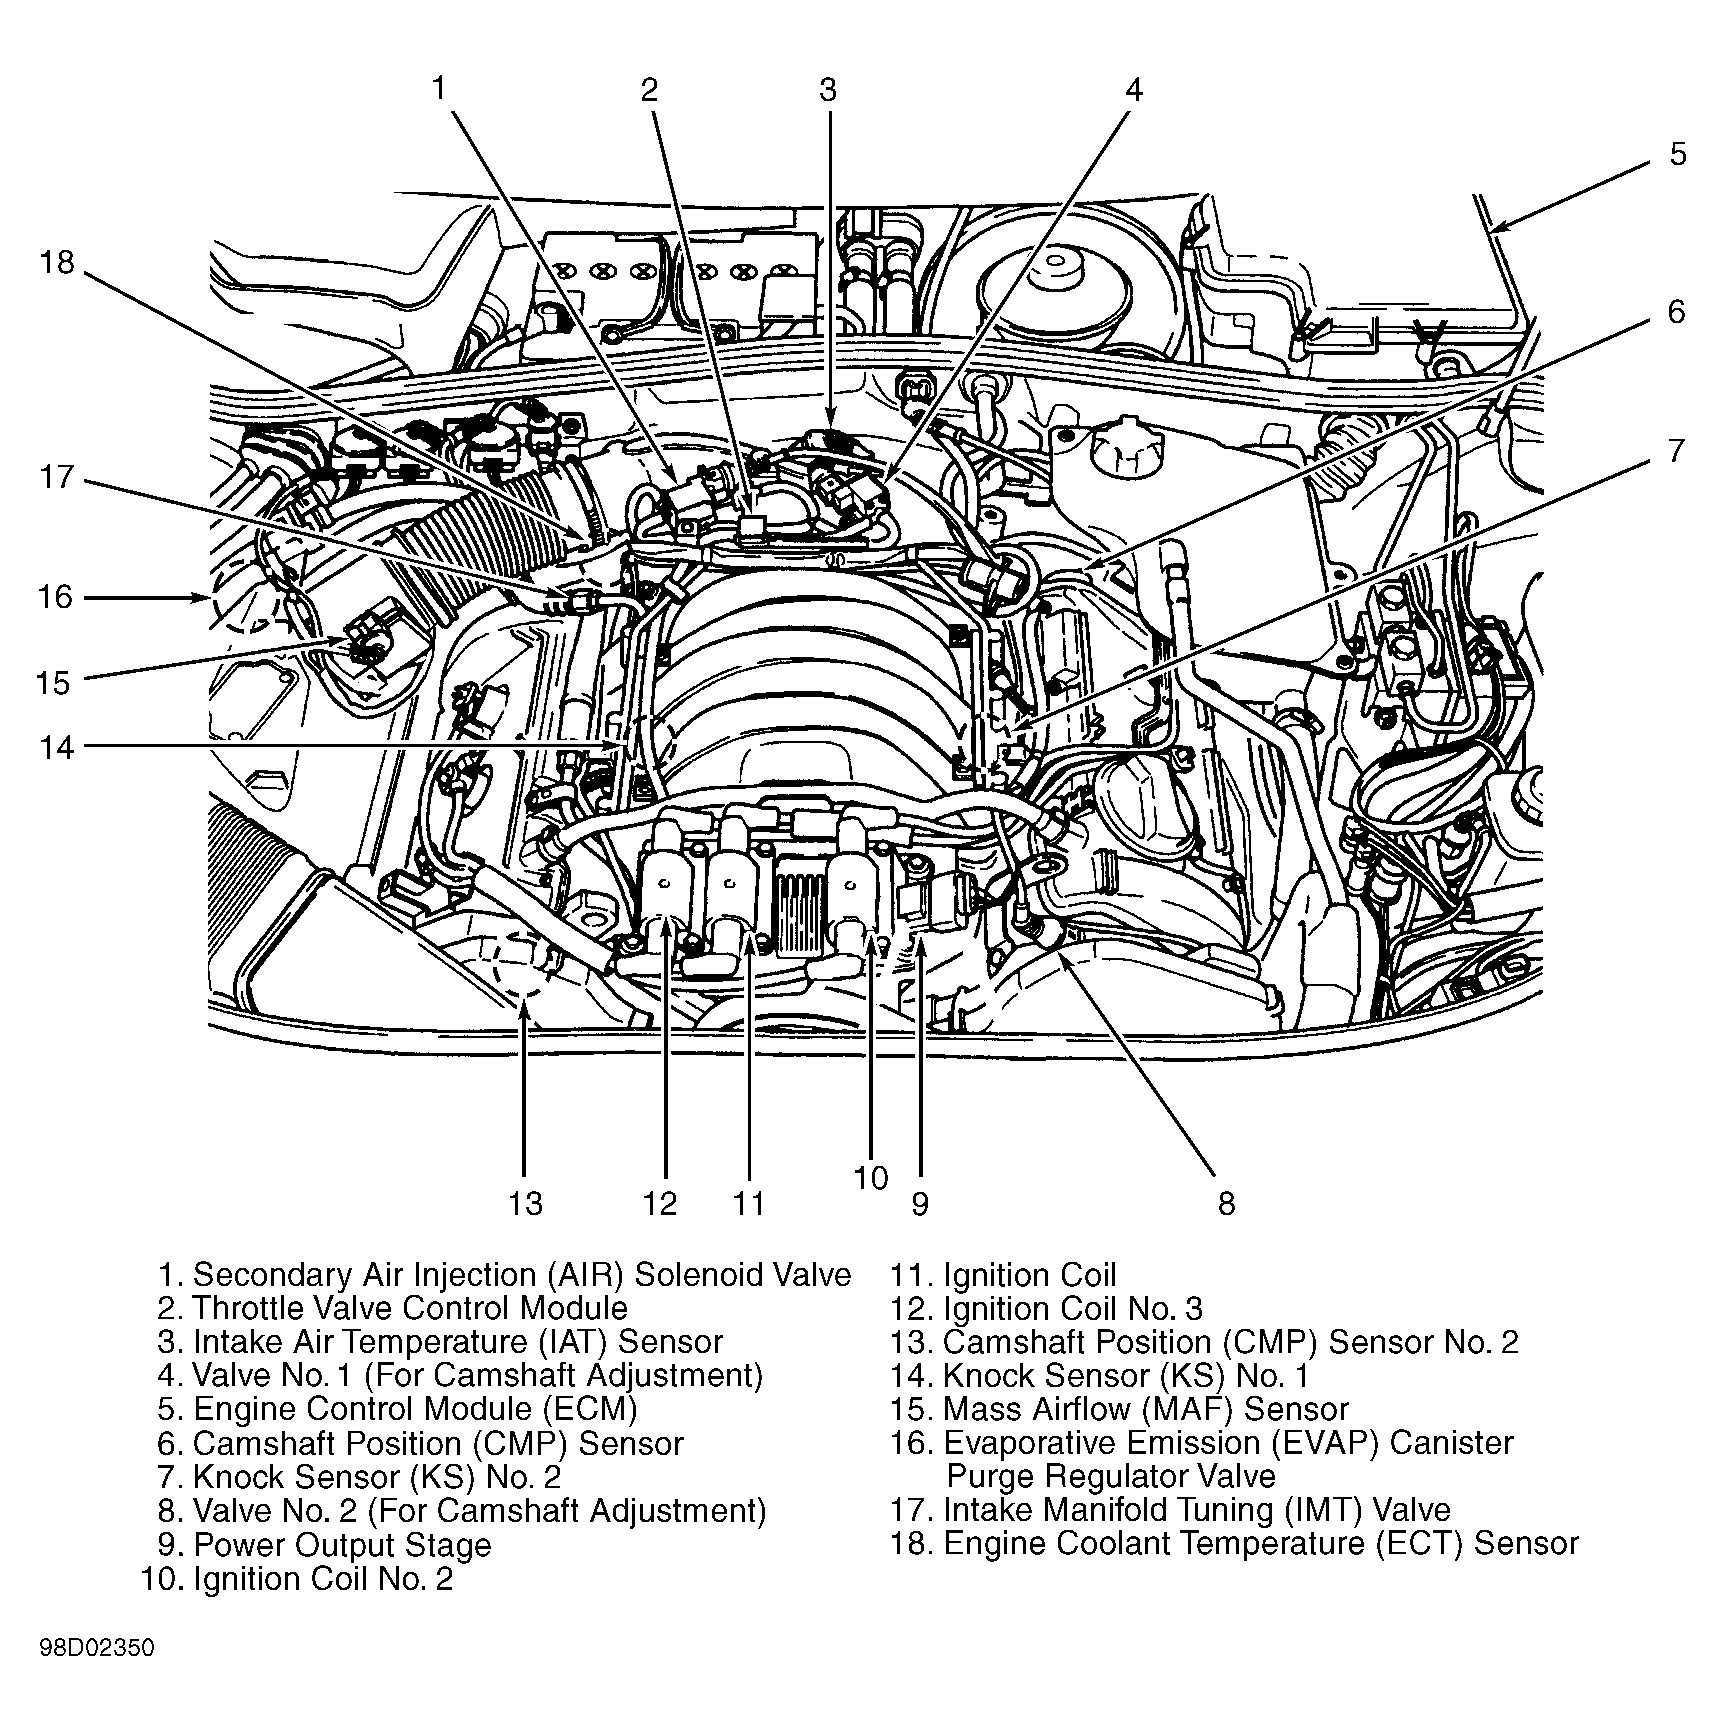 hight resolution of 2000 dodge intrepid wiring harness diagram wiring diagram 2000 dodge intrepid engine wiring diagram